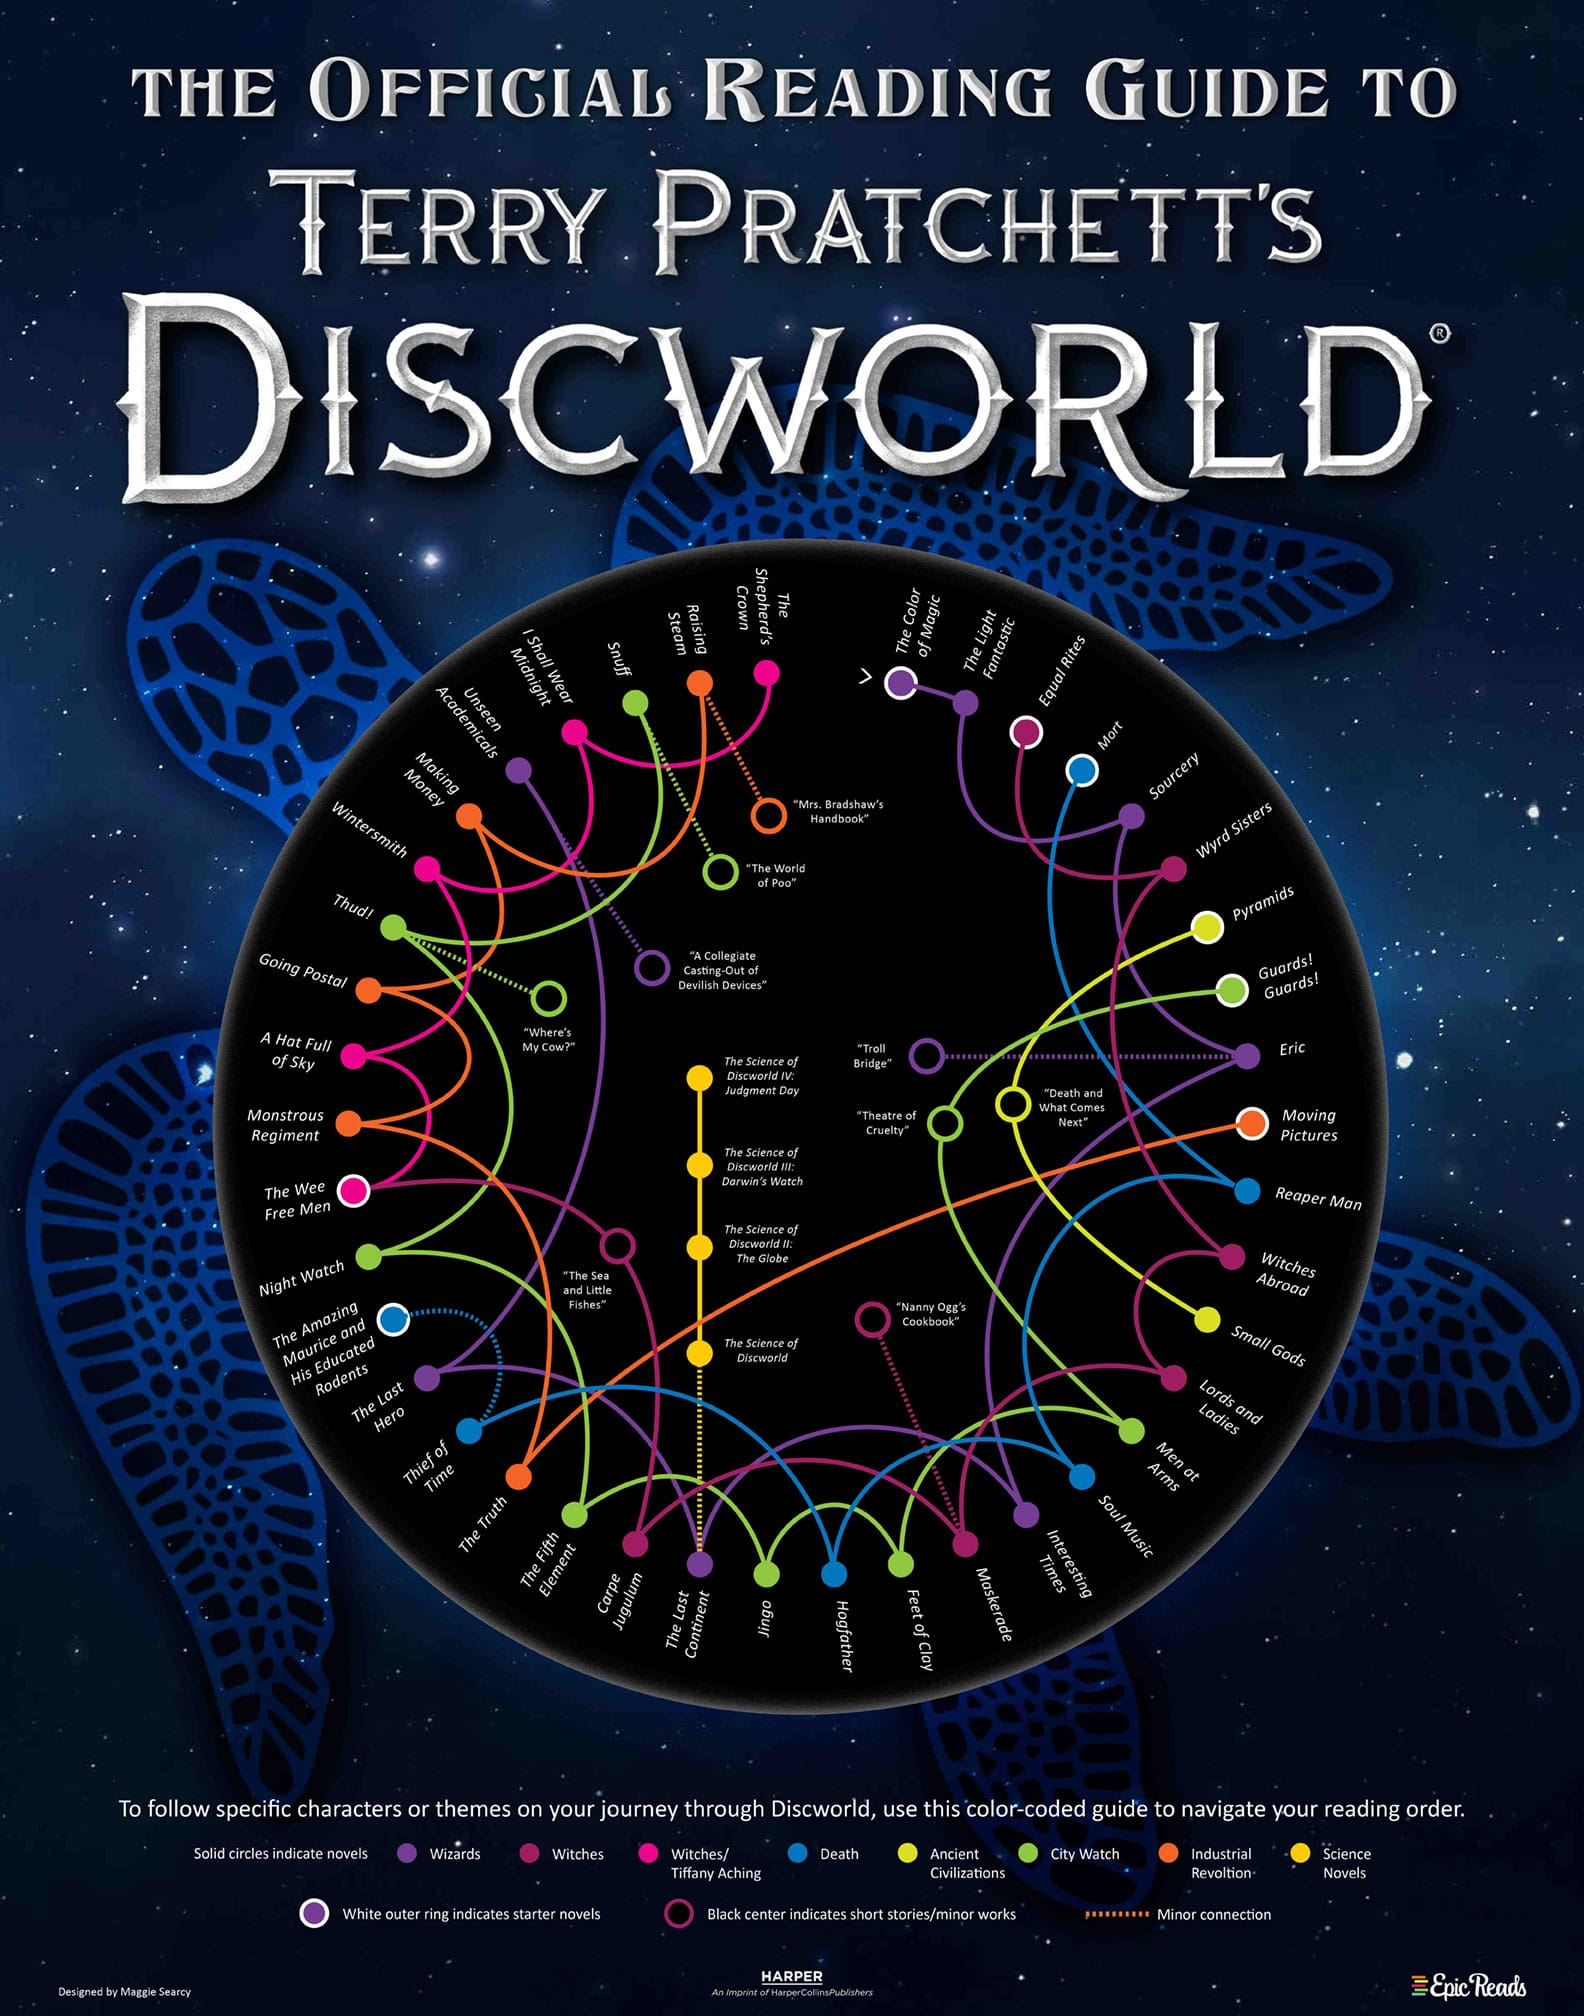 Official Discworld infographic reading guide